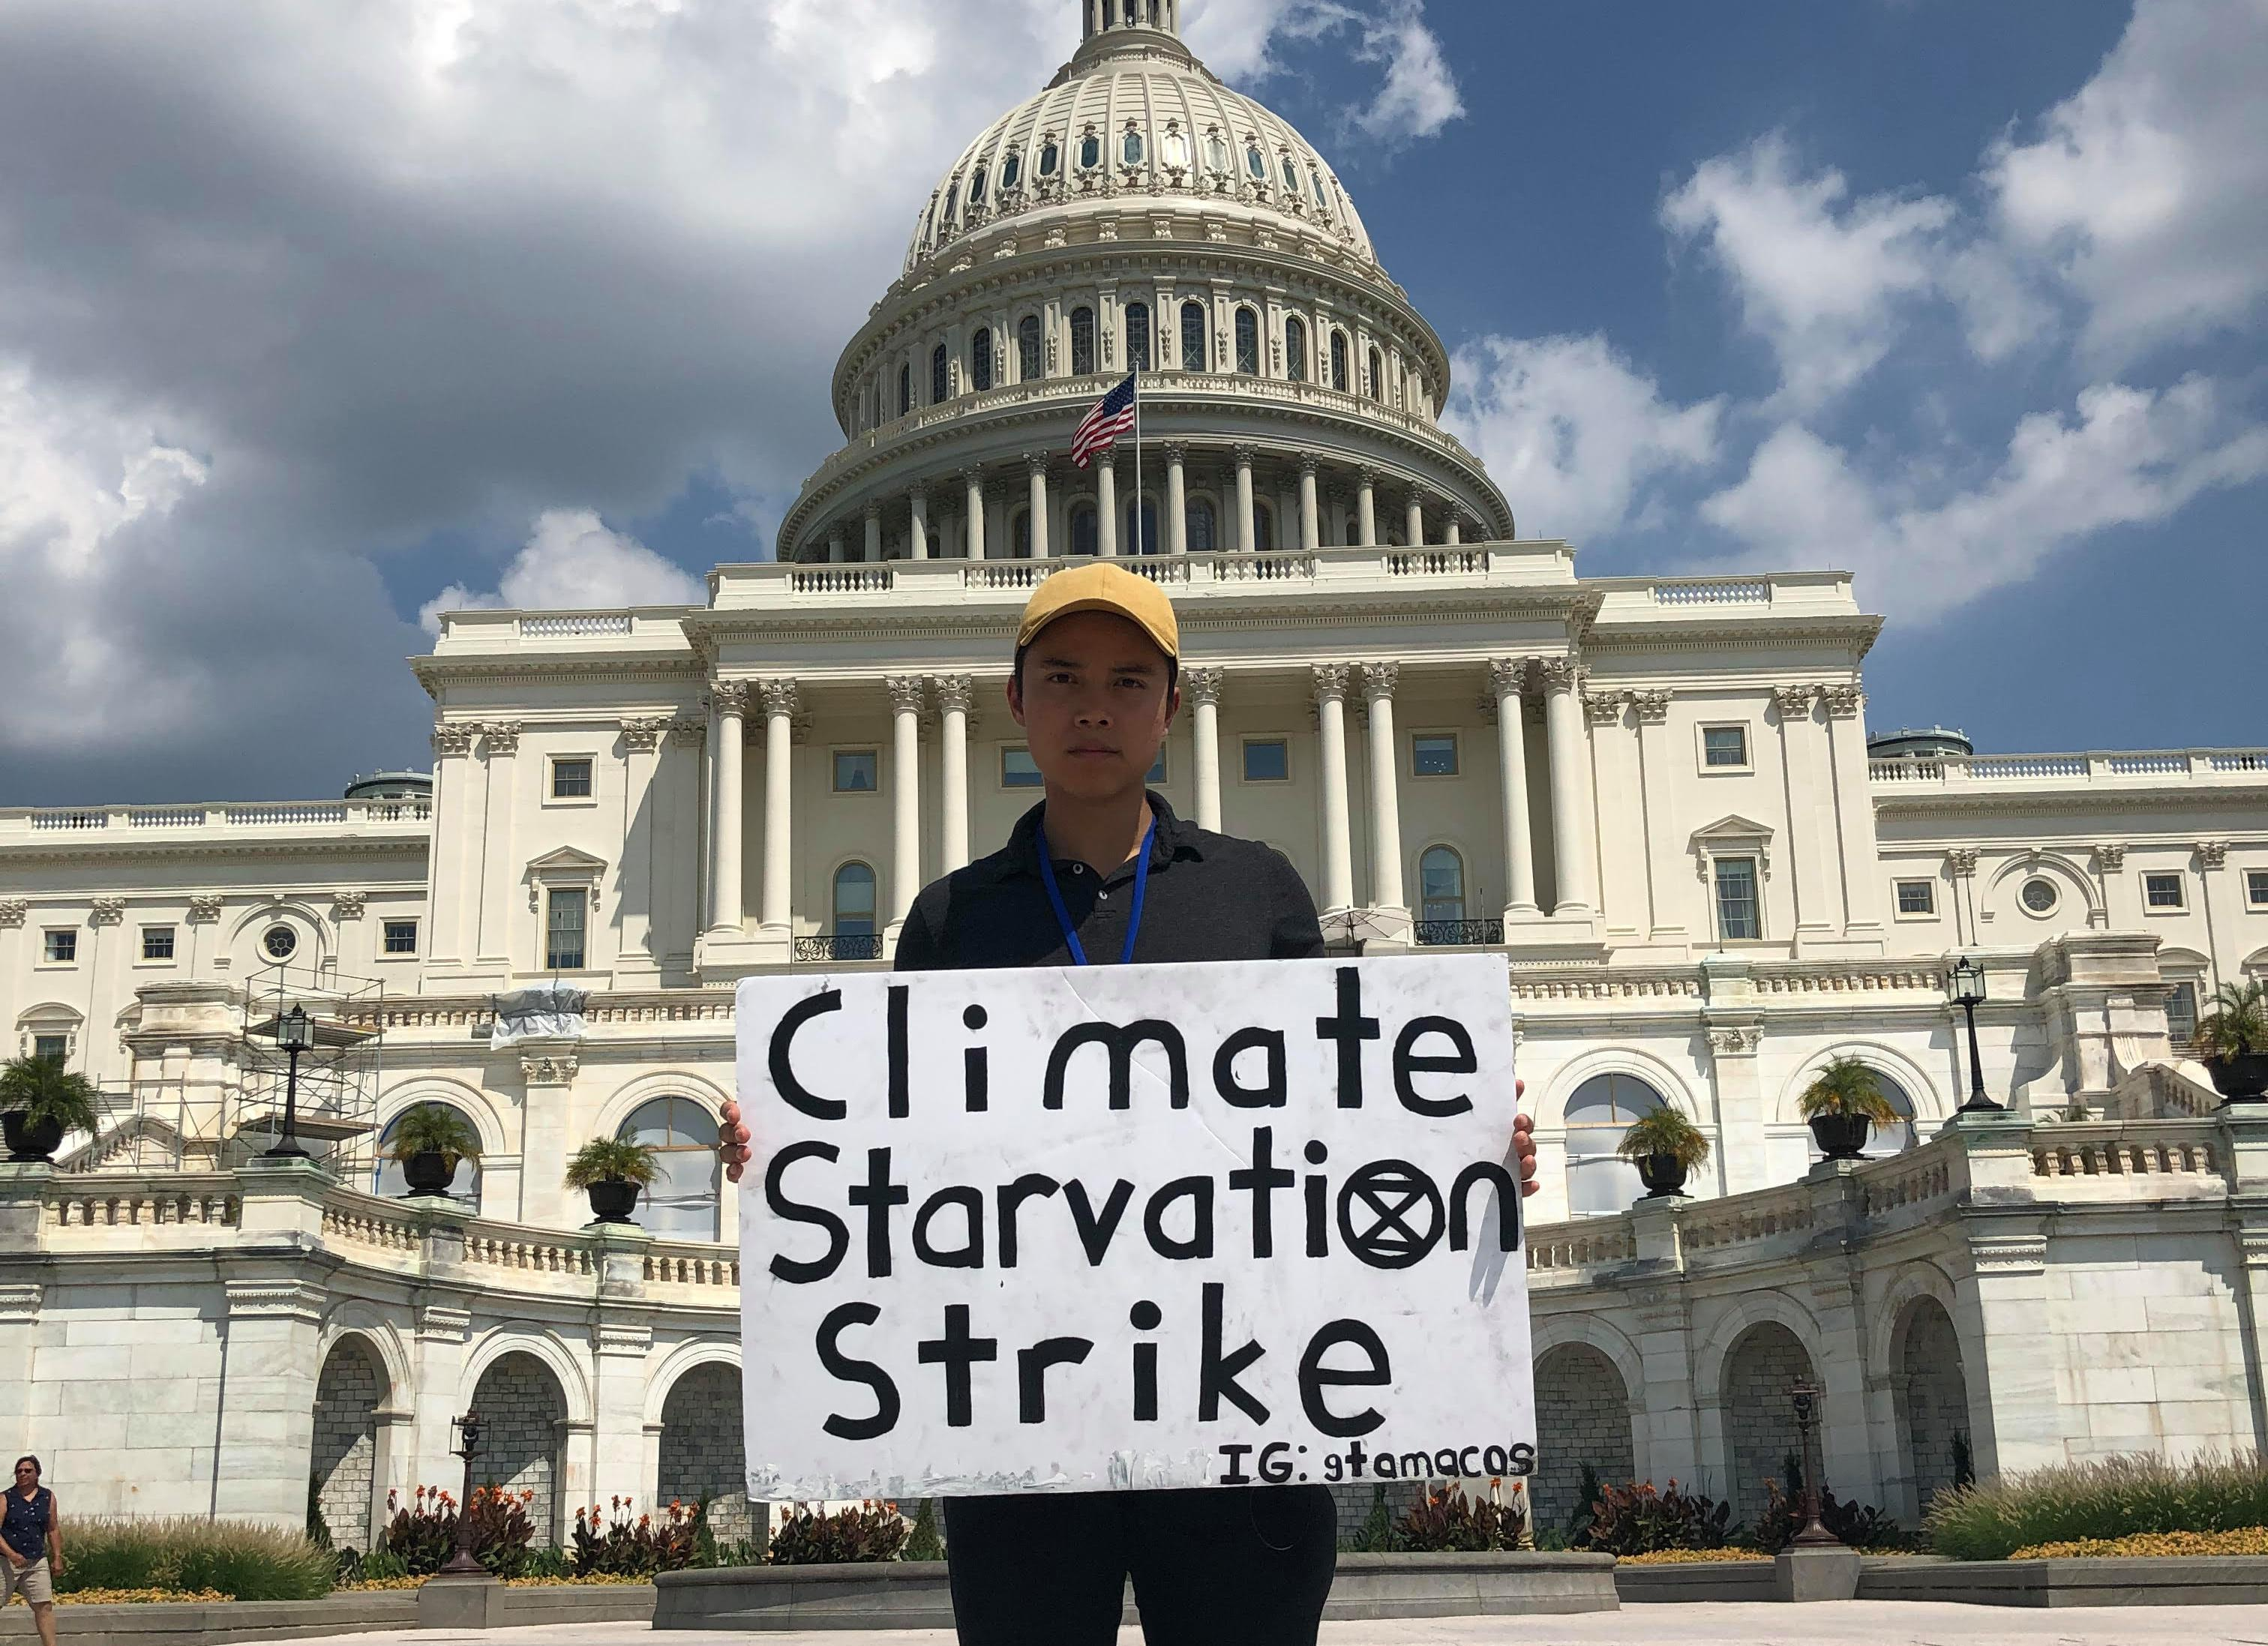 'People should be terrified': one teen's hunger strike over the climate crisis